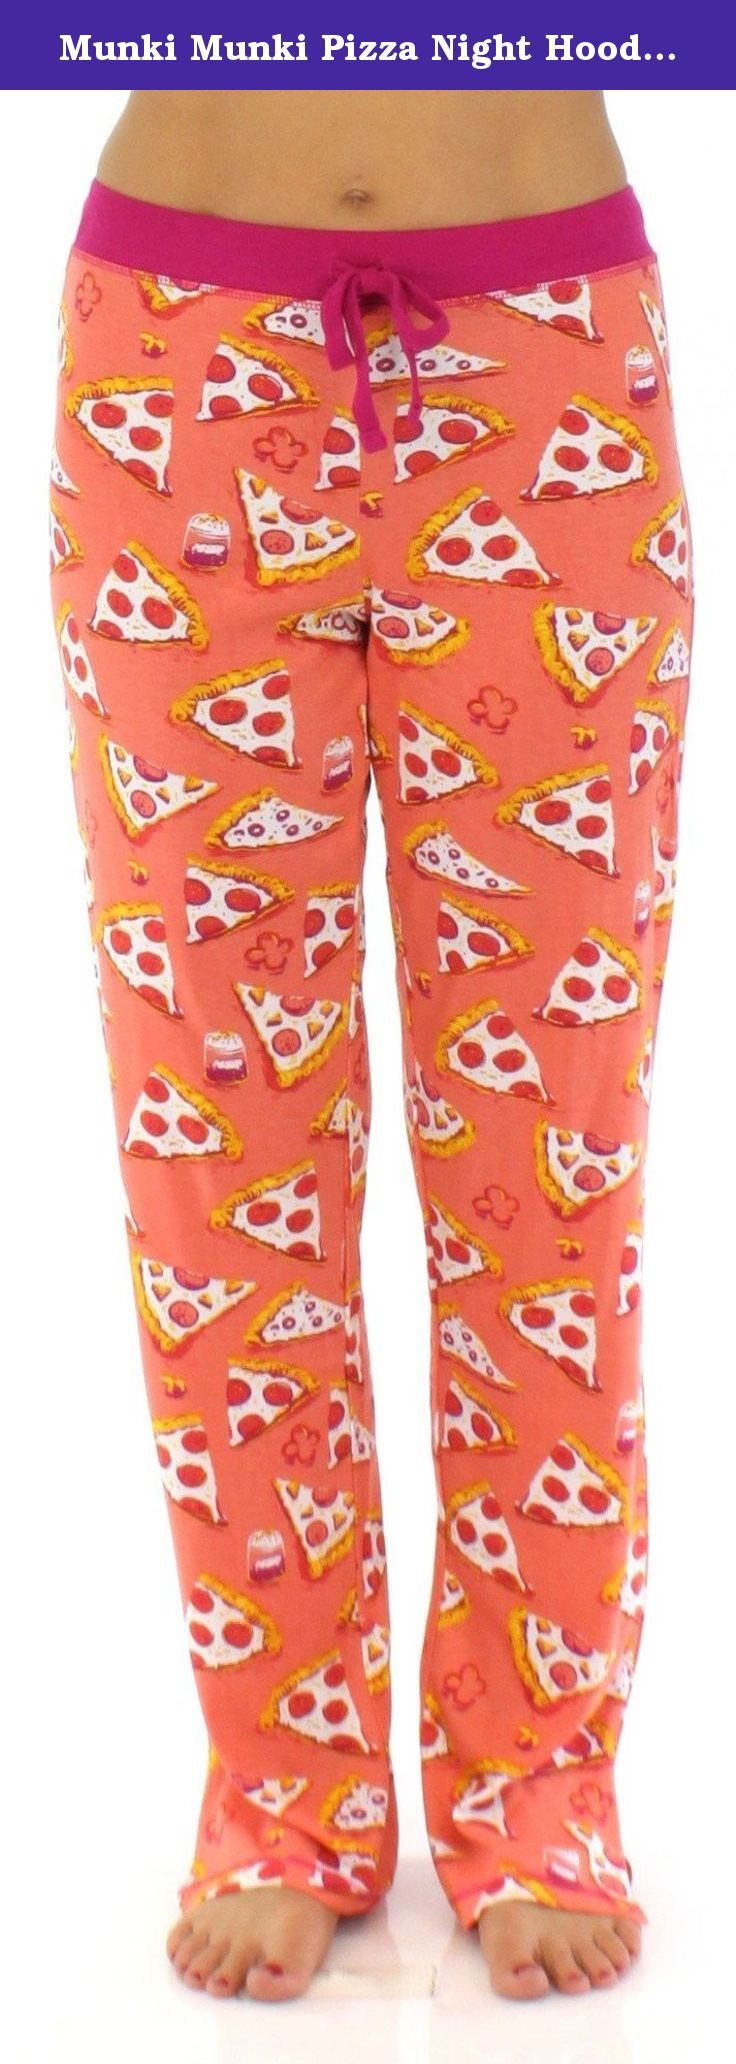 Munki Munki Pizza Night Hooded PJ Set - Medium. Munki Munki long sleeve pajamas are lightweight with just enough stretch, they'll keep you comfortable day or night. Each set features a fun and playful design with thumbholes in the cuffs for easy layering Sizing: XS (2-4), Small (4-6), Medium (8-10), Large (10-12), XL (12-14).